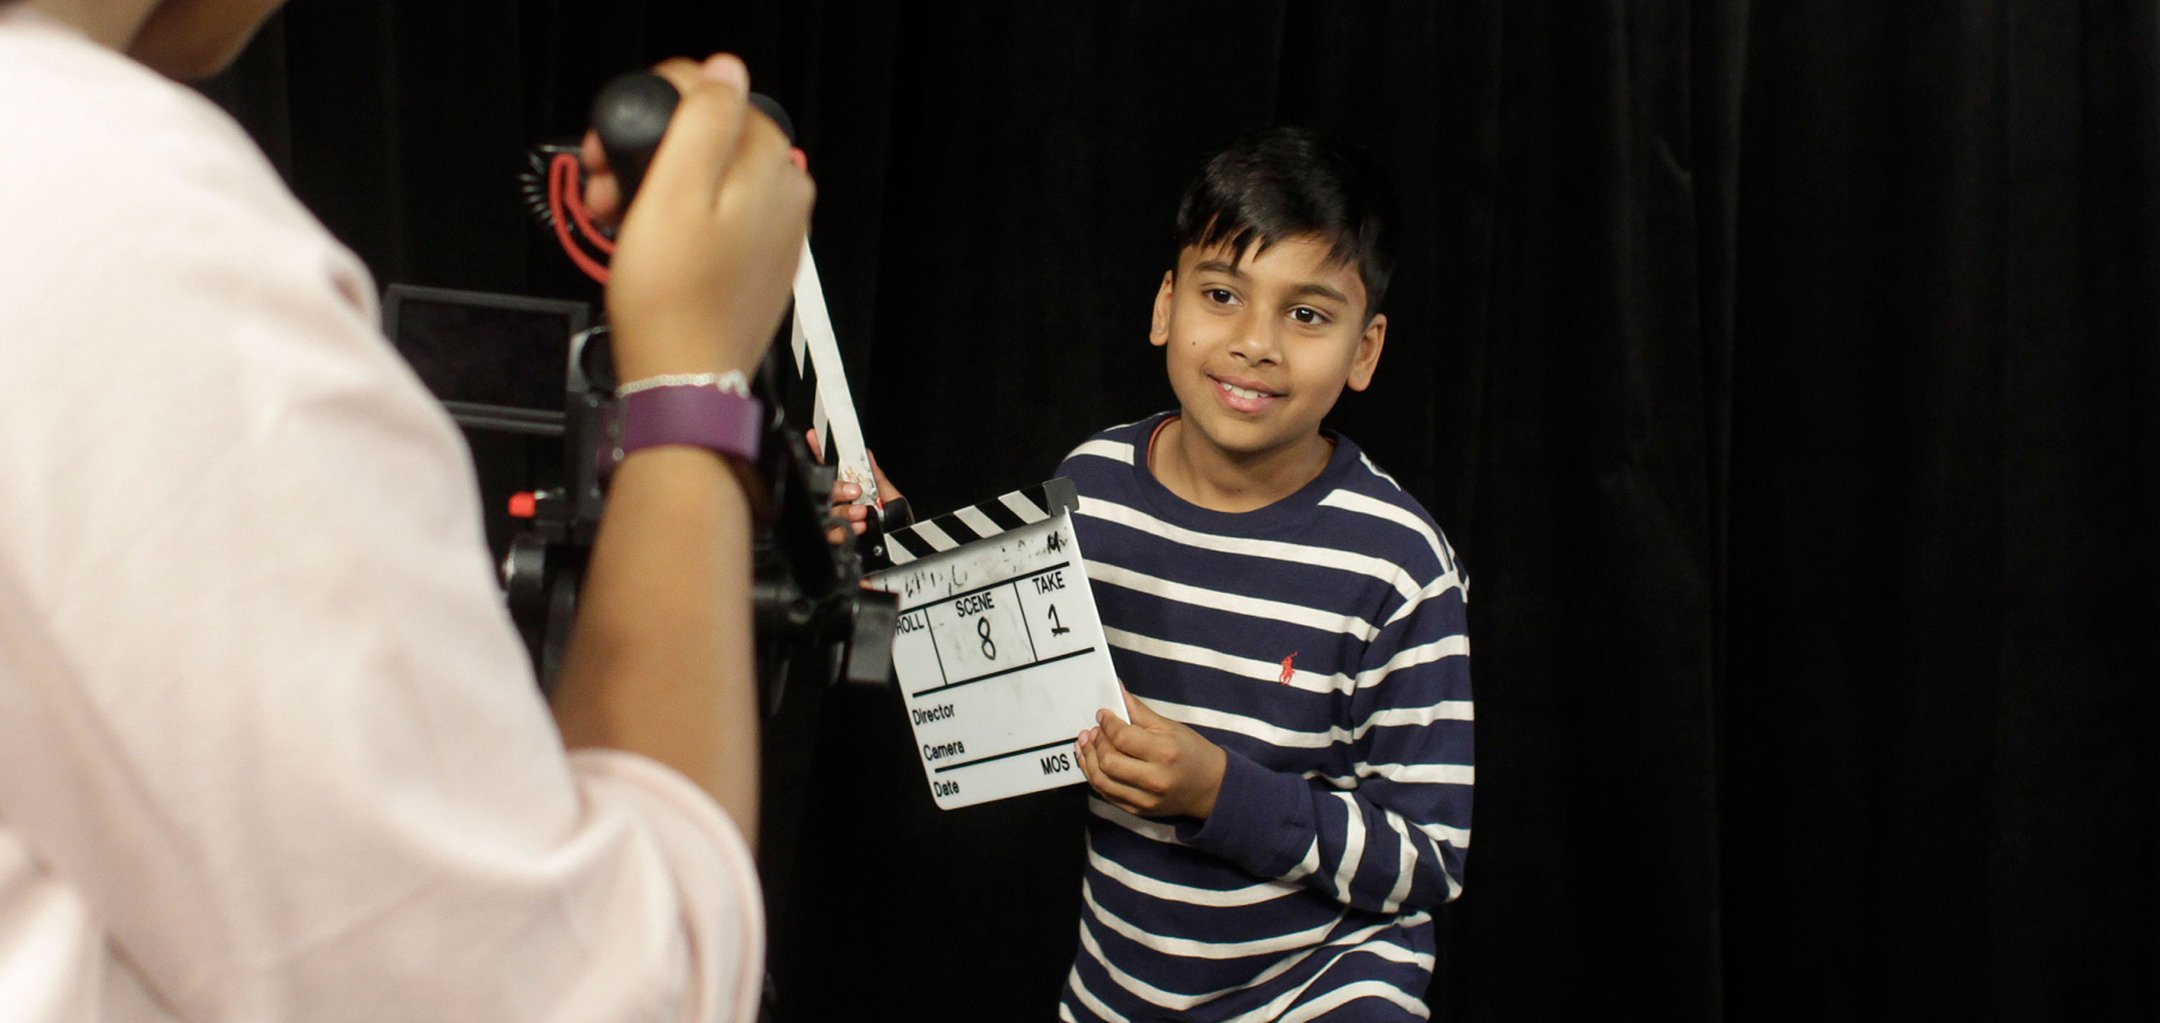 Kid holding a clapperboard in front of a black screen and a video camera